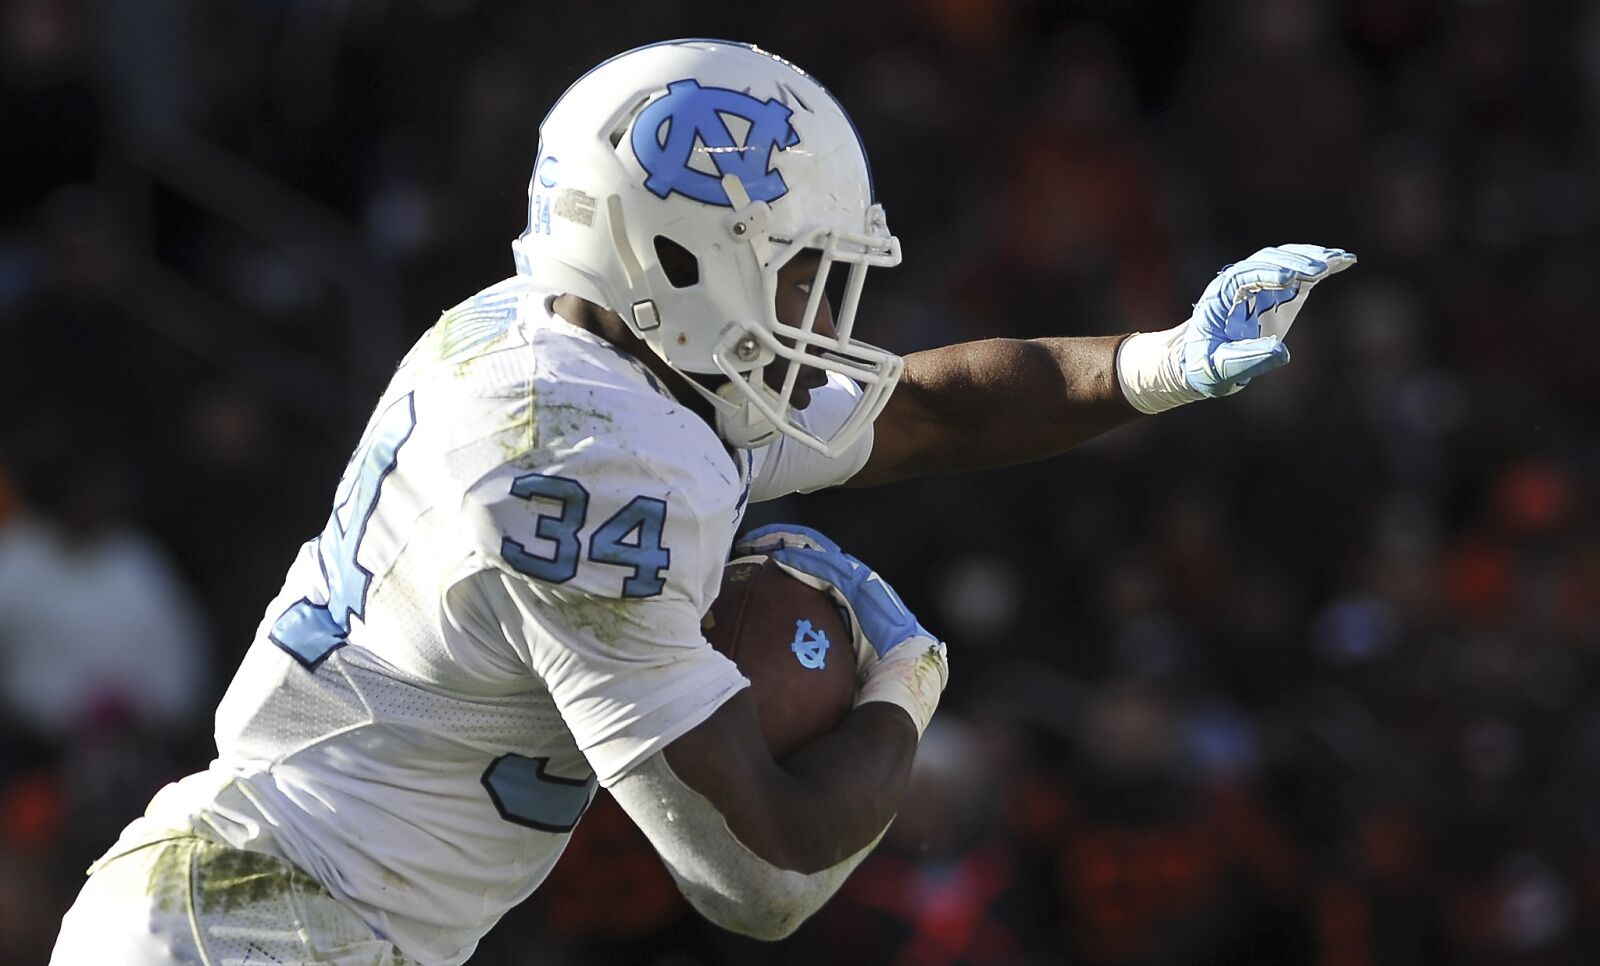 f3704a705 UNC Football Alumni  Elijah Hood scores TD in first game with Panthers